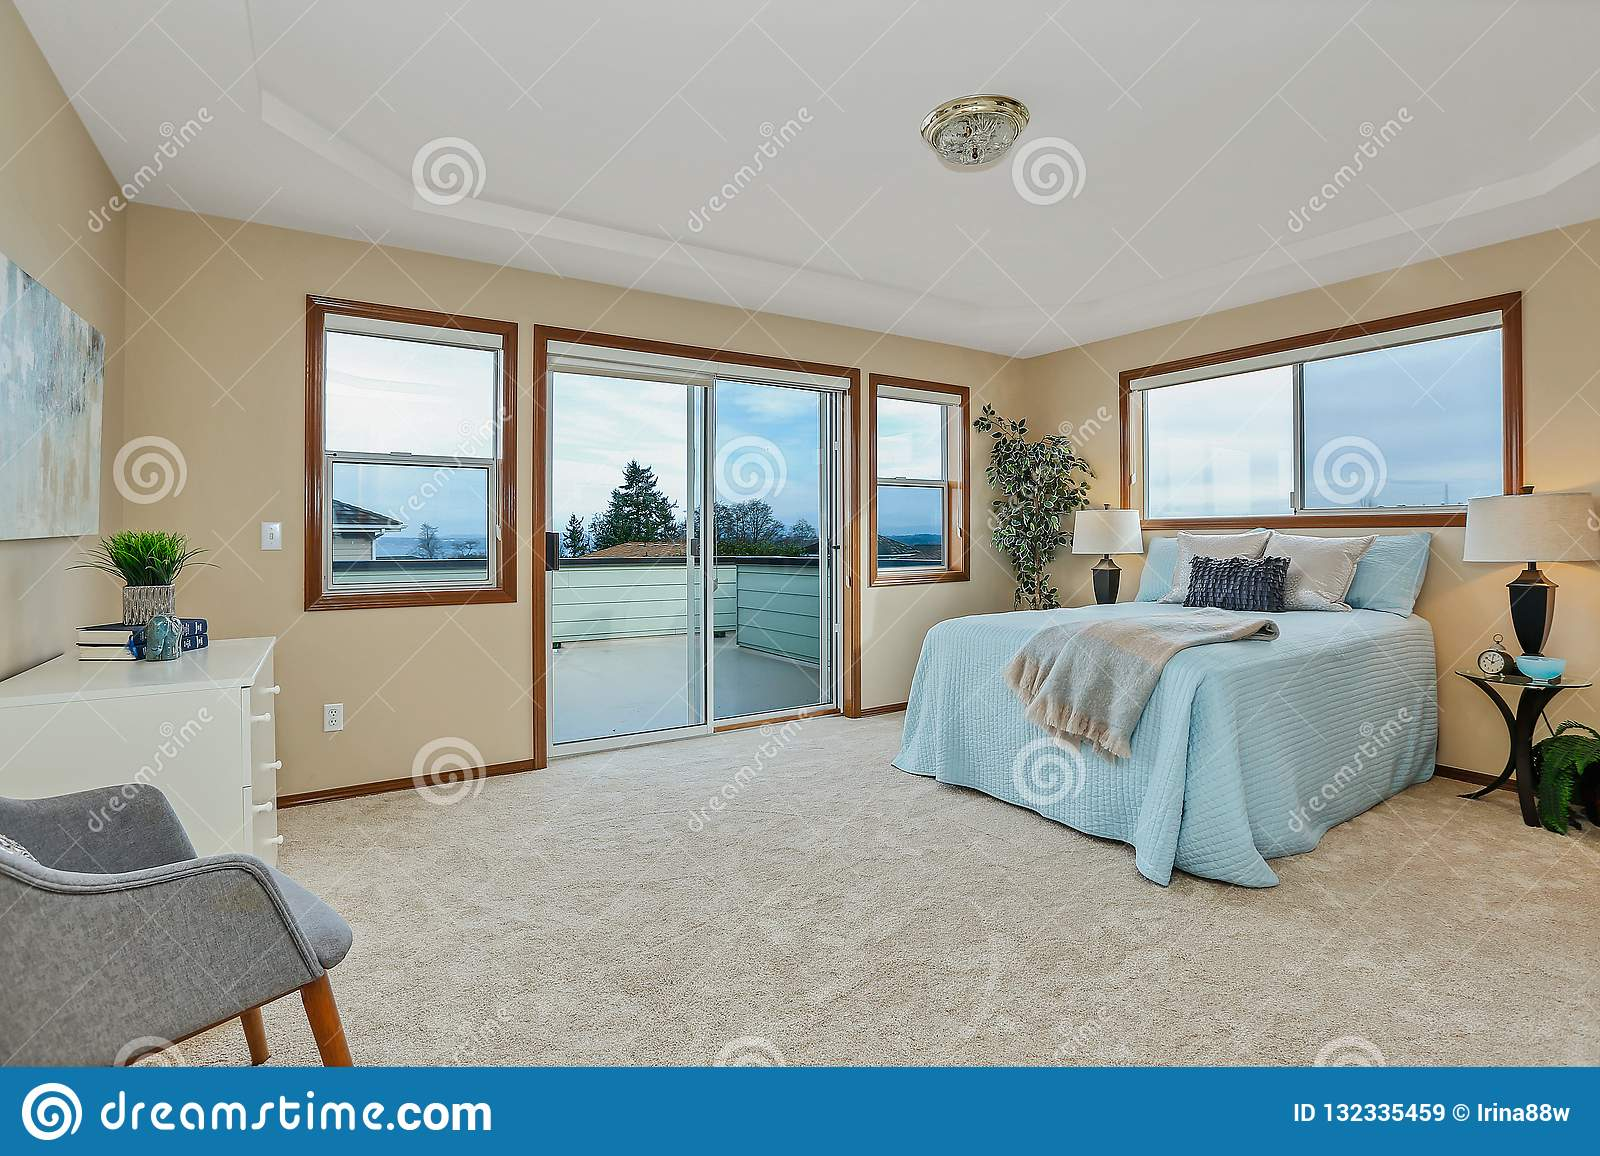 Large Beige Master Bedroom With Blue Bedding Stock Image Image Of Furnished Architecture 132335459